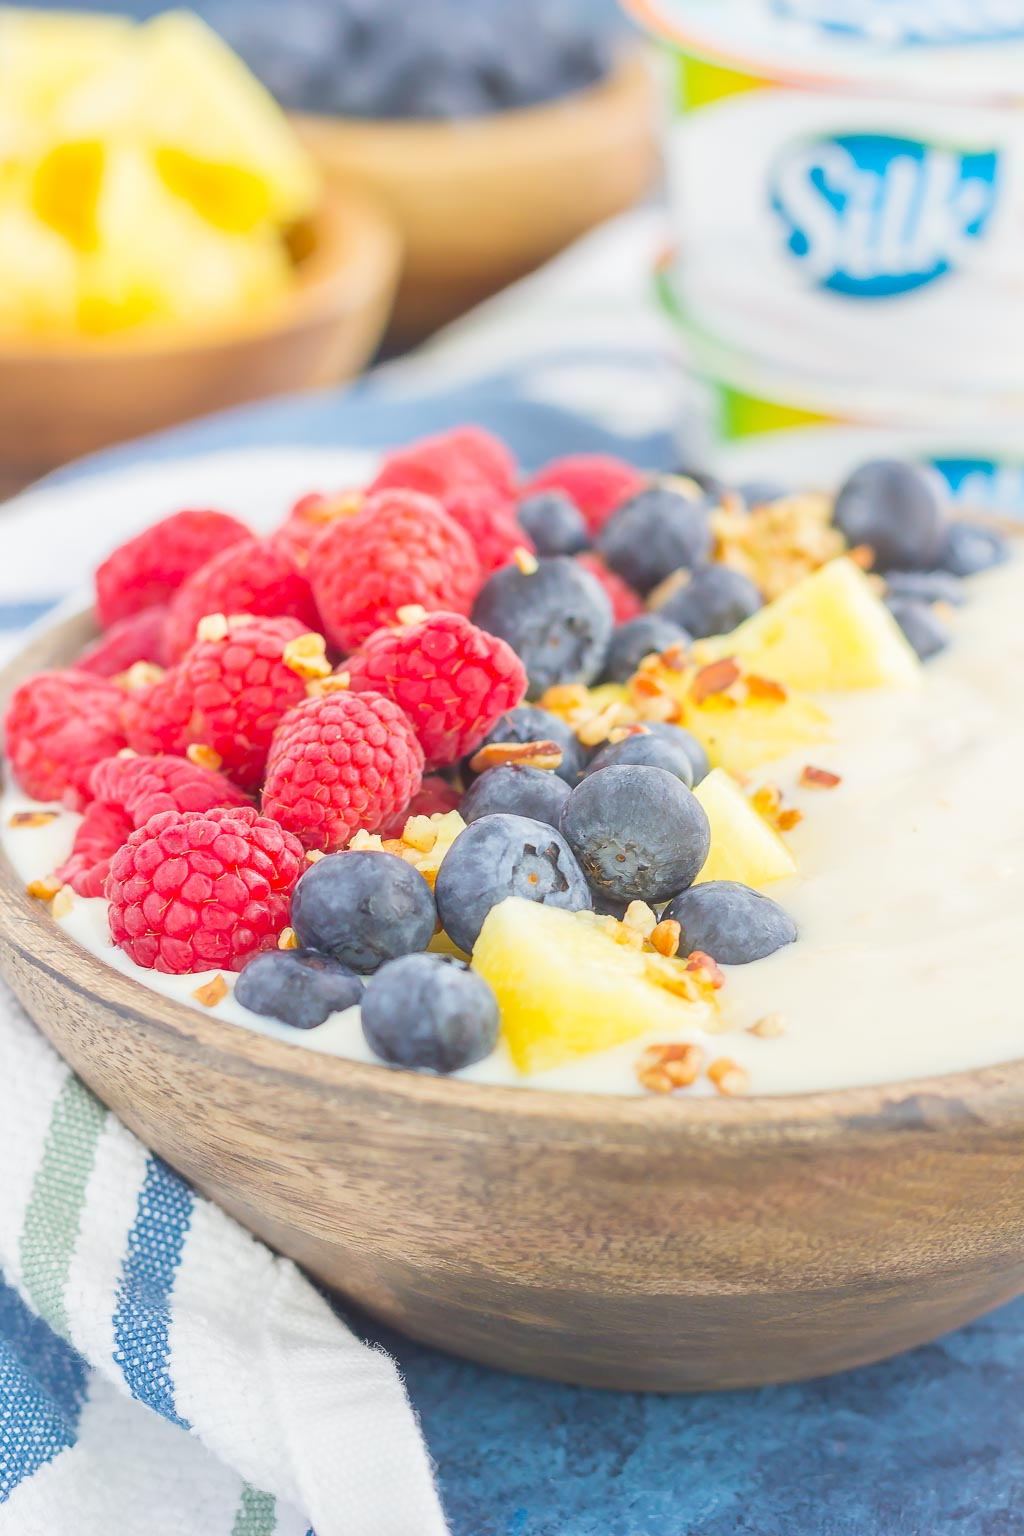 This Fruity Peach Yogurt-Alternative Bowl is a deliciously sweet way to start the day. Packed with Silk® Peach & Mango Dairy-Free Yogurt Alternative, fresh fruit, and a sprinkling of chopped pecans, this bowl is ready in minutes and makes the perfect breakfast!